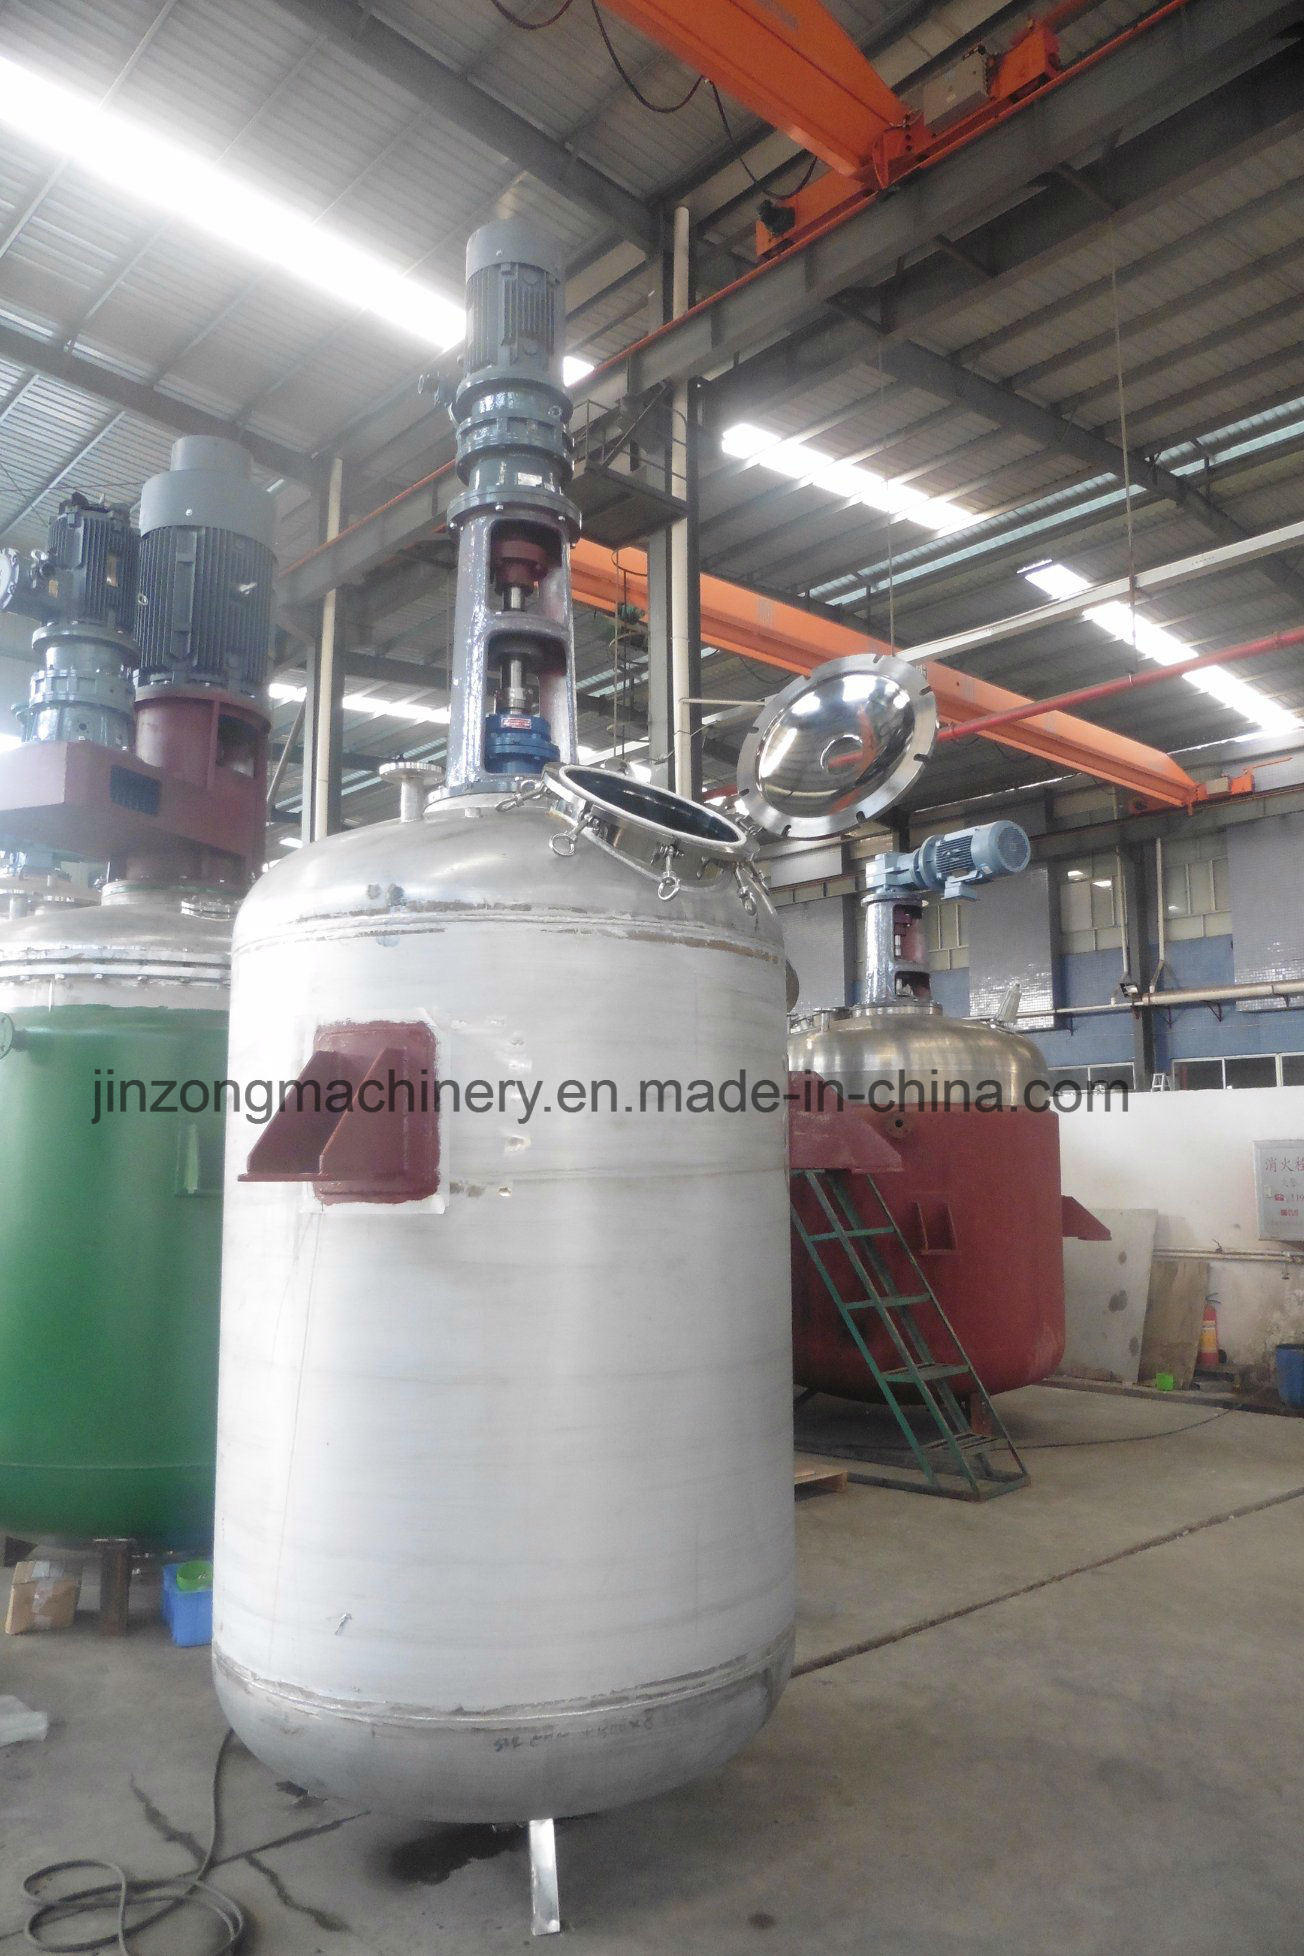 2000L Chemical Reactor with Jacket Heating/Cooling